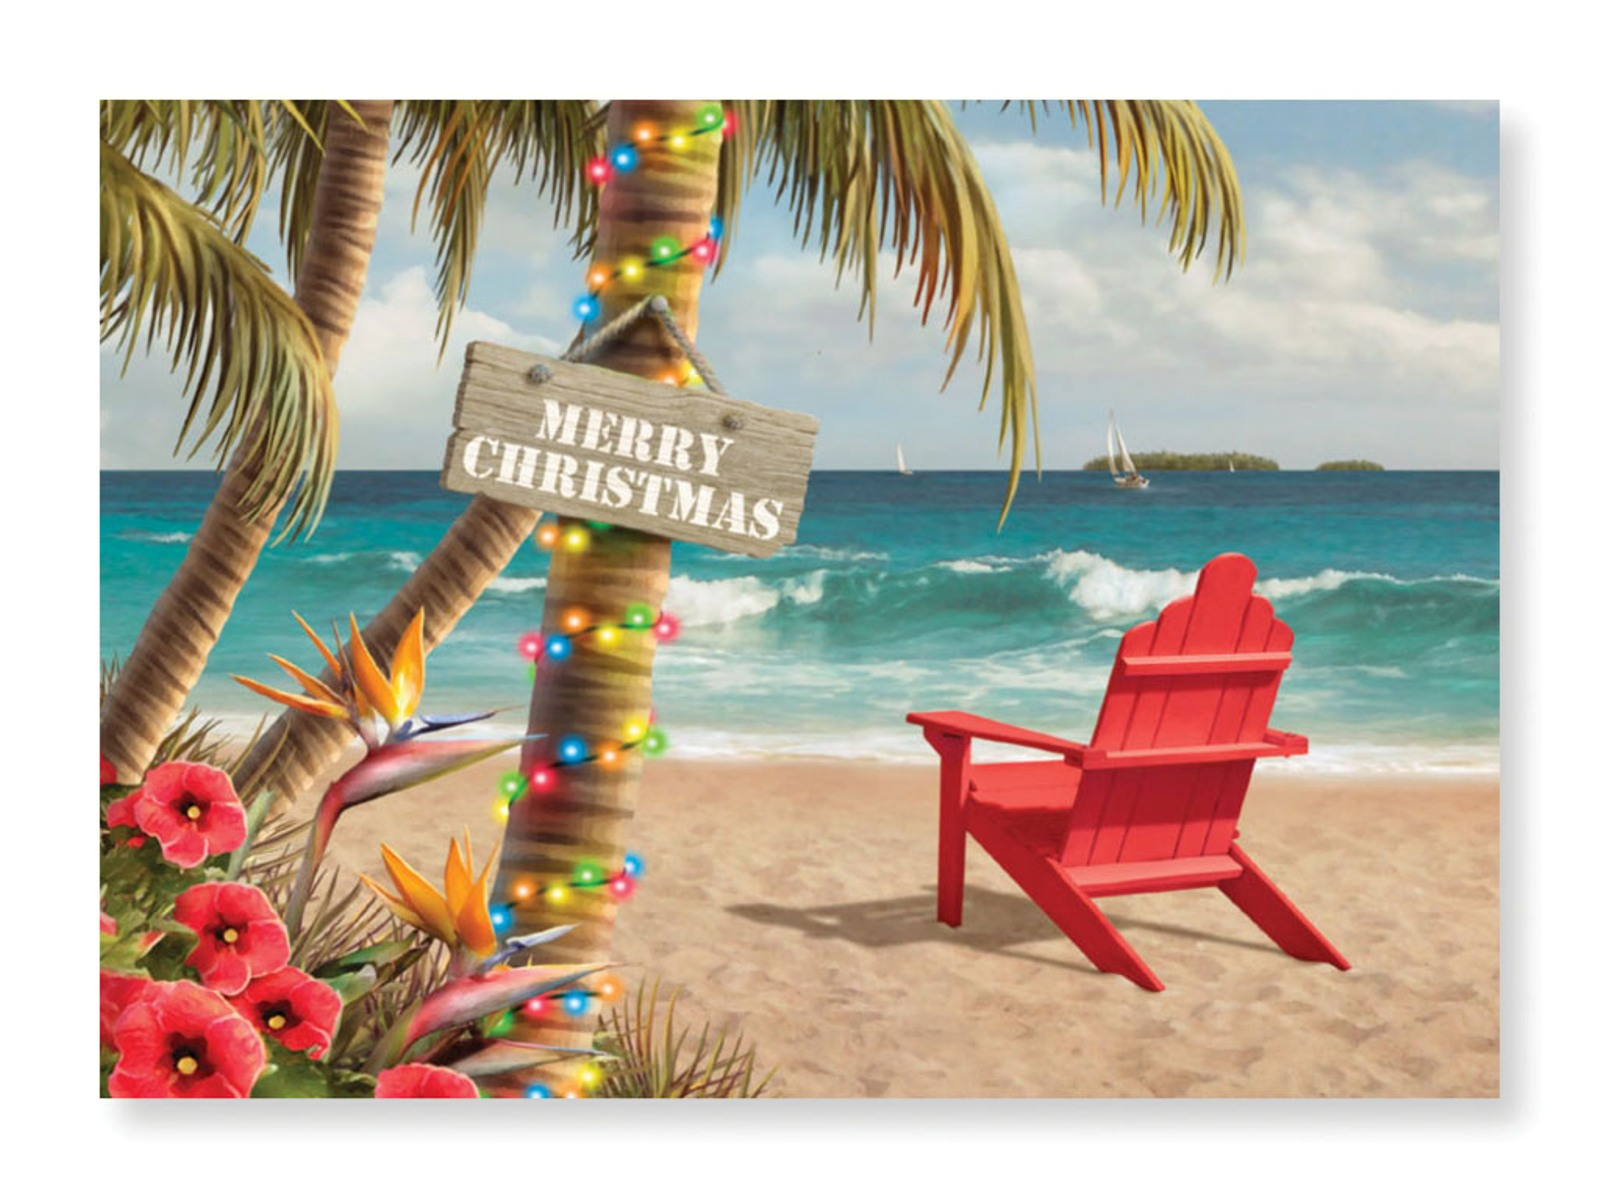 Christmas card beach pictures inspiring quotes and words in life tropical beach holiday paradise boxed christmas holiday greeting cards ebay kristyandbryce Gallery